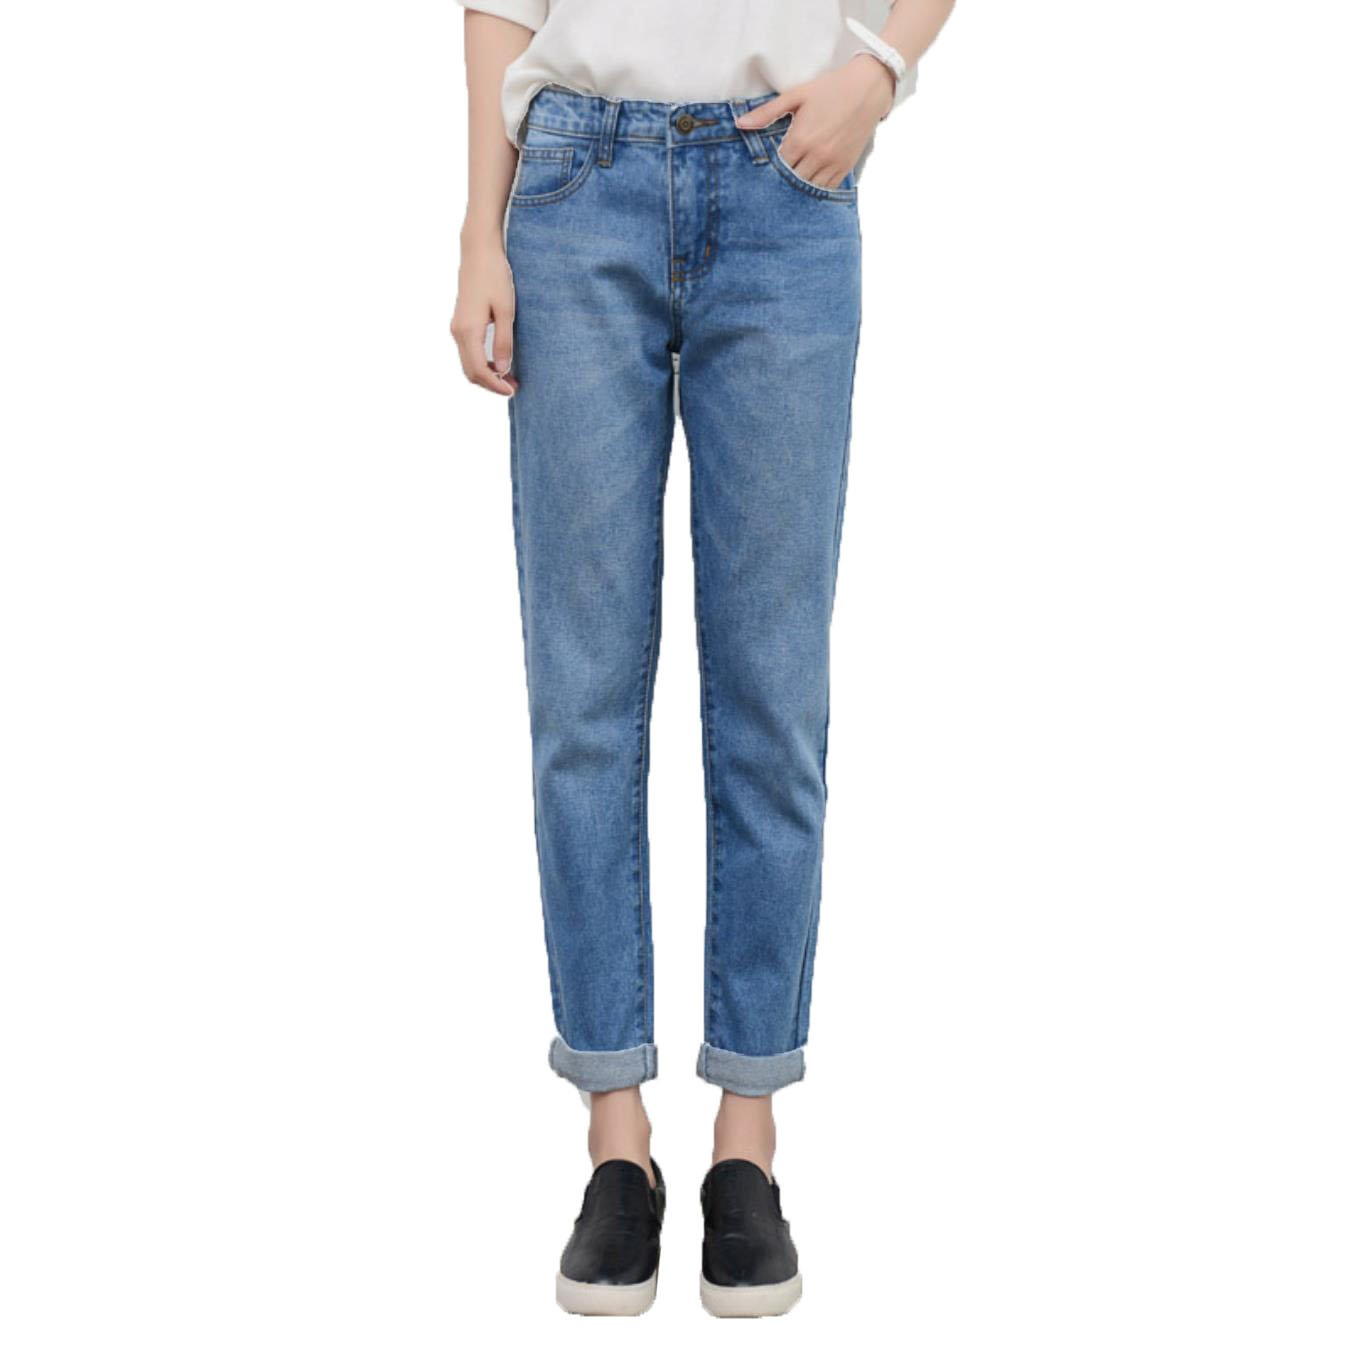 Swellog Spring Fashion BF Ripped Jeans for Women High Waist Loose Skinny Jeans